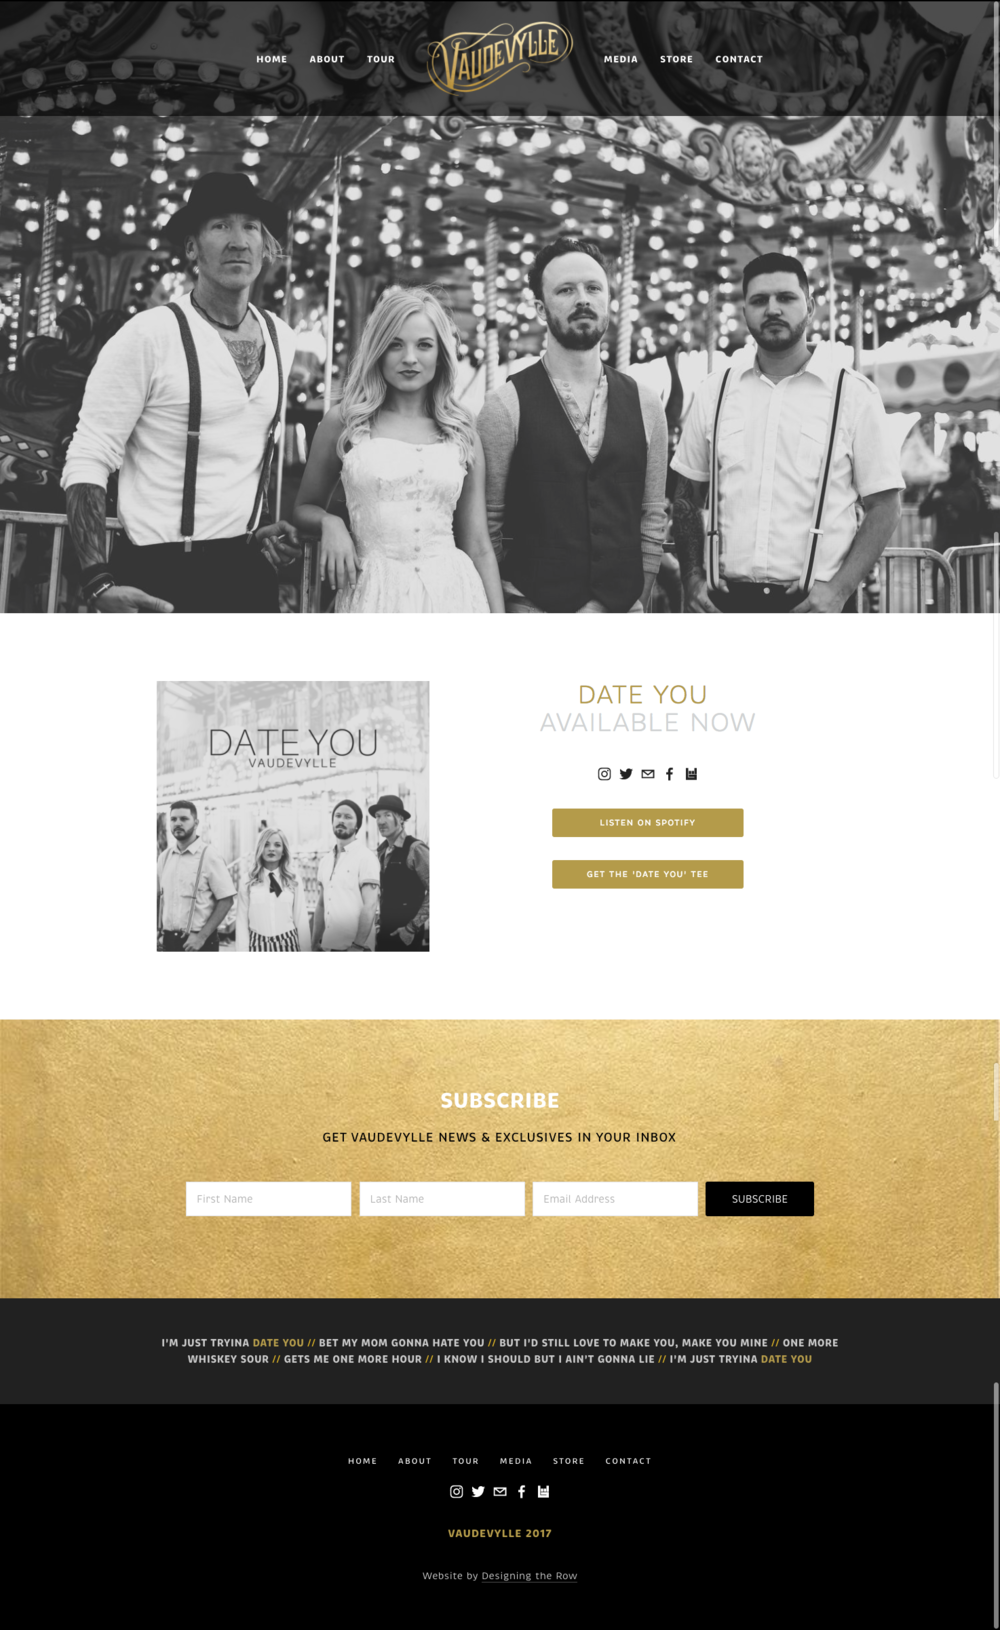 Squarespace Pacific homepage layout | Vaudevylle music